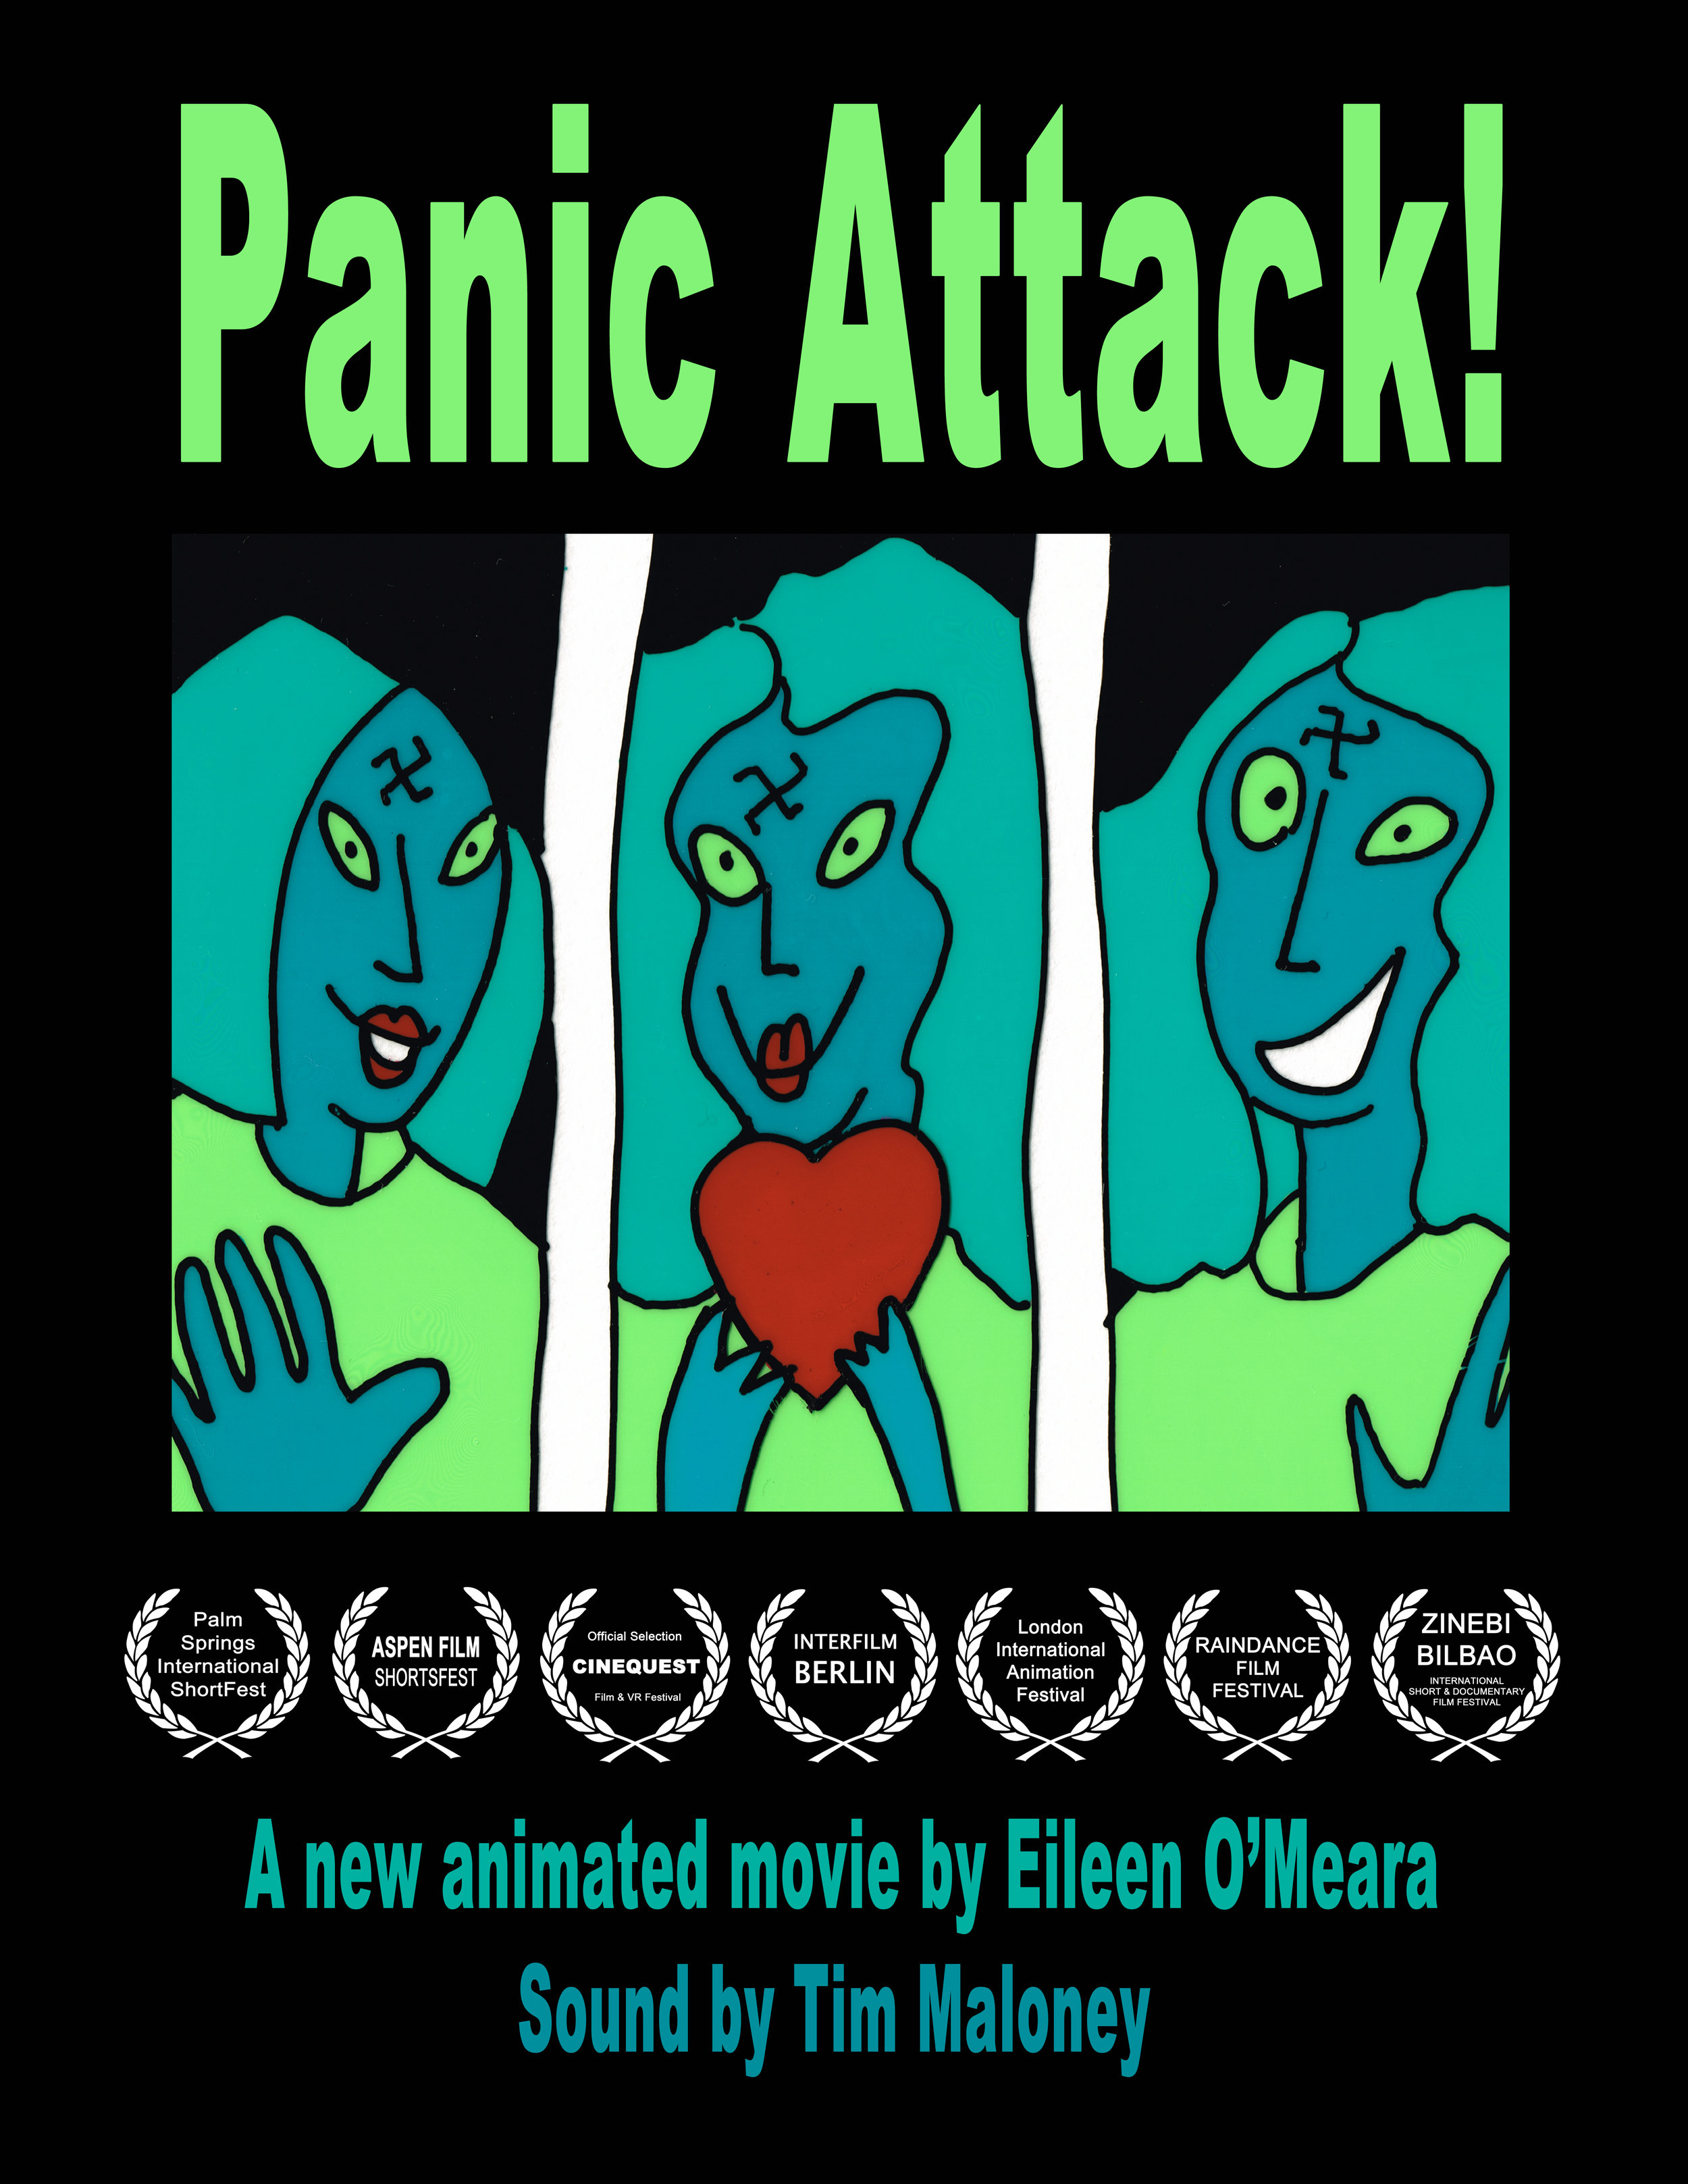 Poster Panic Attack_The Manson Girls_©Eileen OMeara.jpg